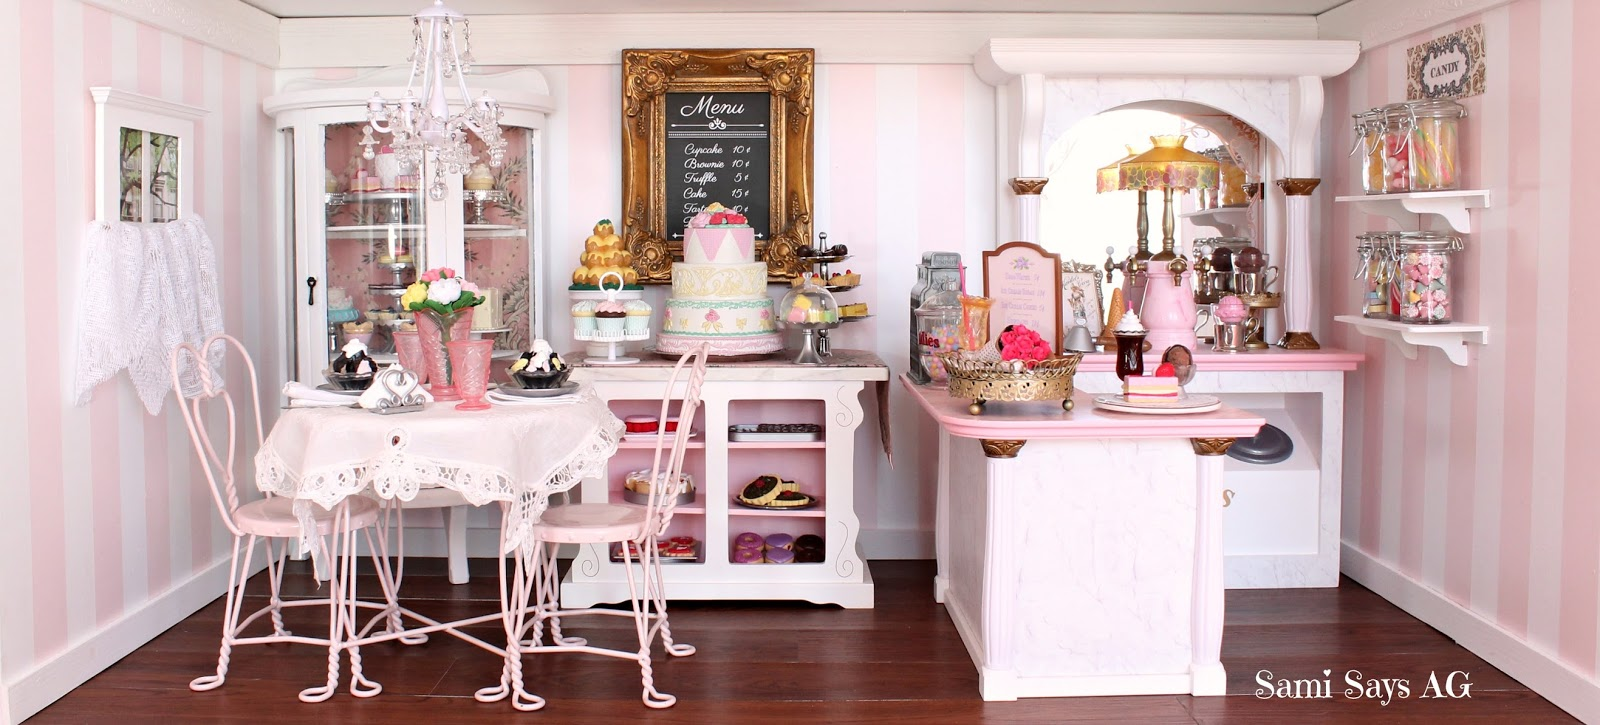 Between The Ice Cream Bakery Treats Candy And Fancy Victorian Theme We Knew Going To Have Fun With This Room